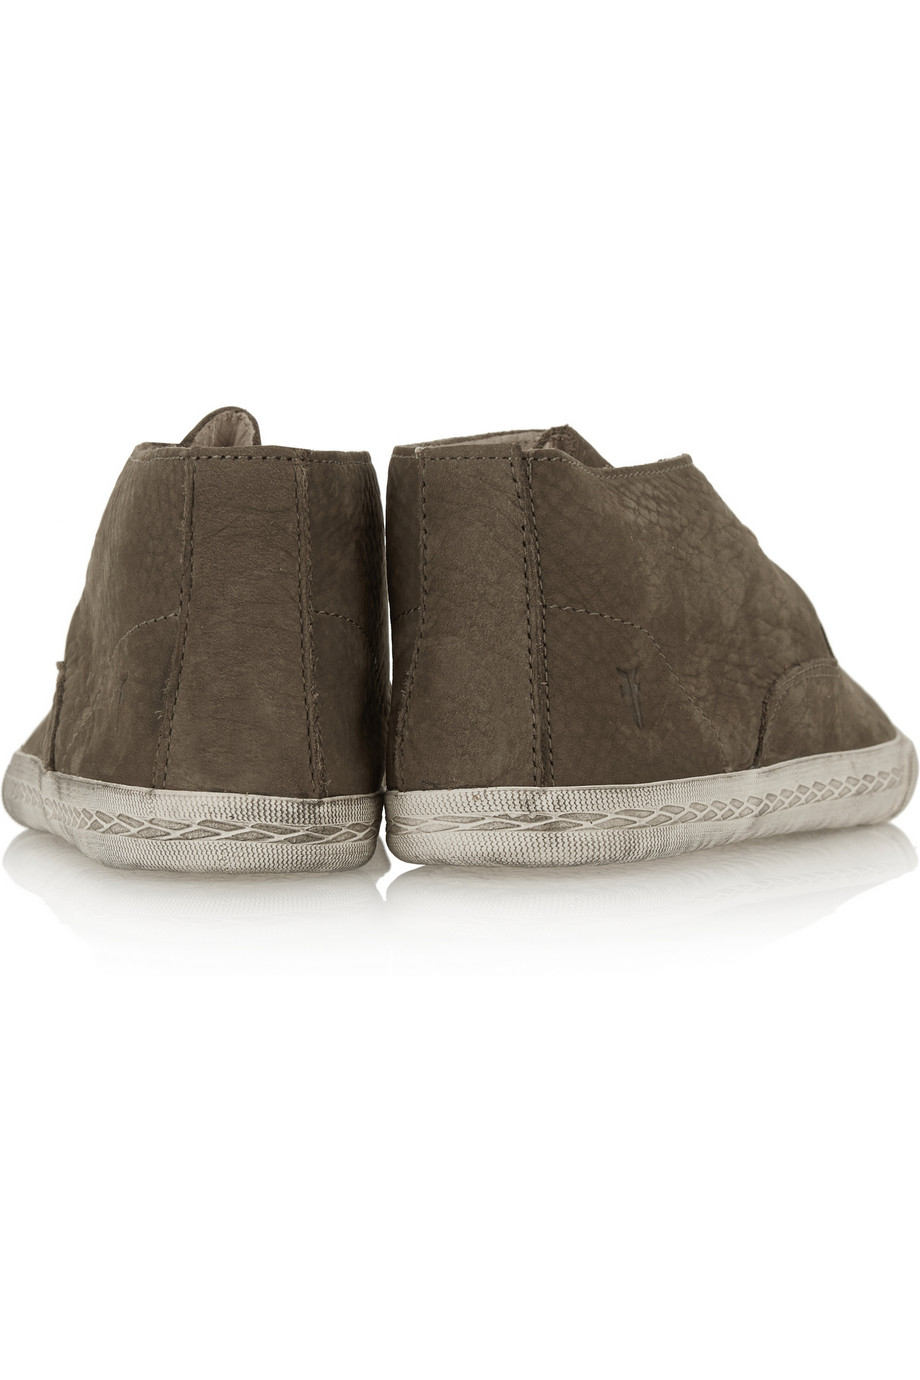 Frye Mindy Chukka Brushed-Suede Ankle Boots in Brown